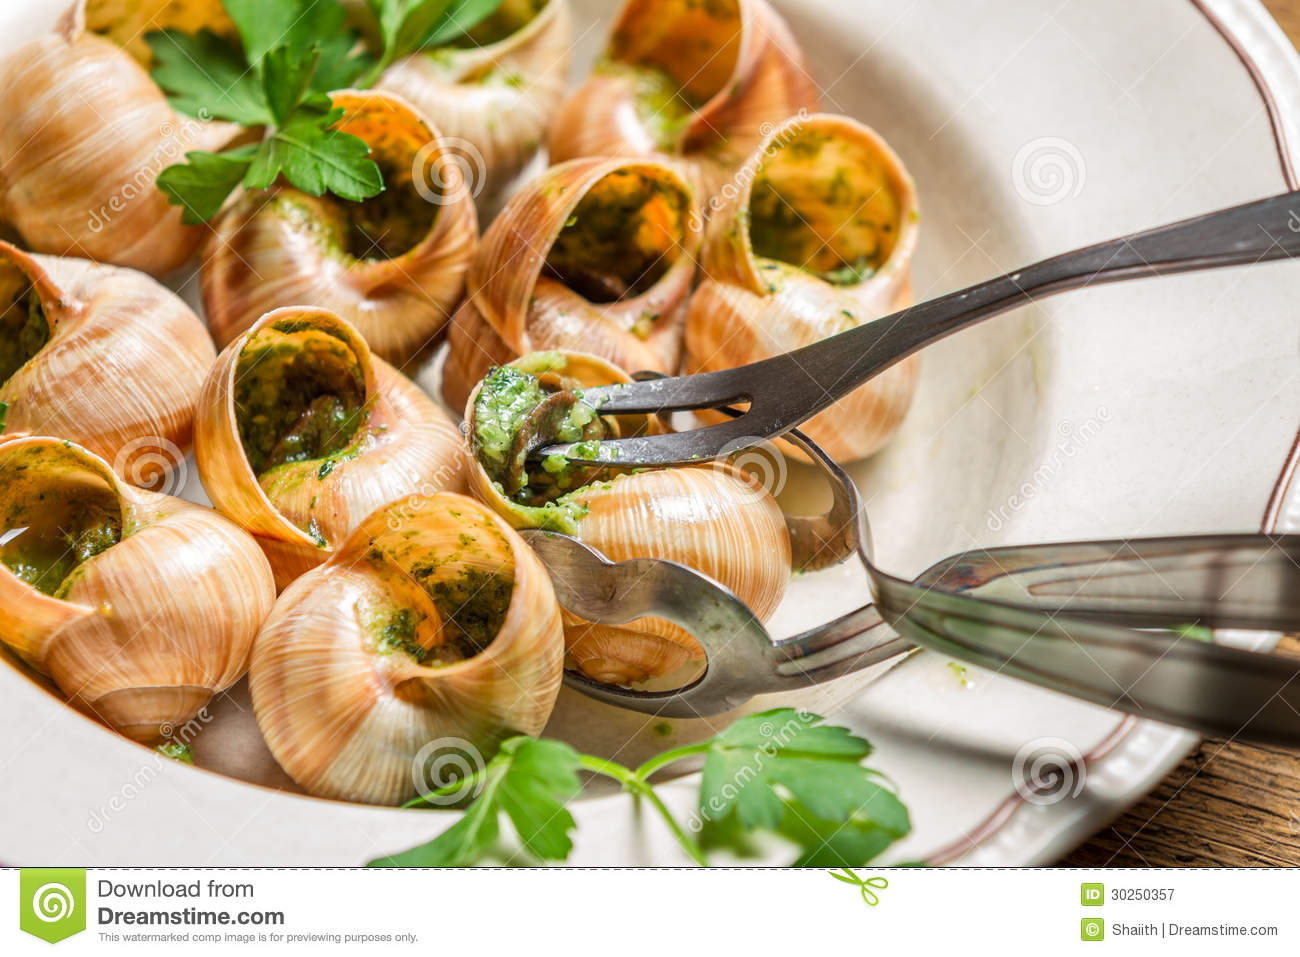 http://thumbs.dreamstime.com/z/closeup-eating-fried-snails-garlic-butter-old-plate-30250357.jpg